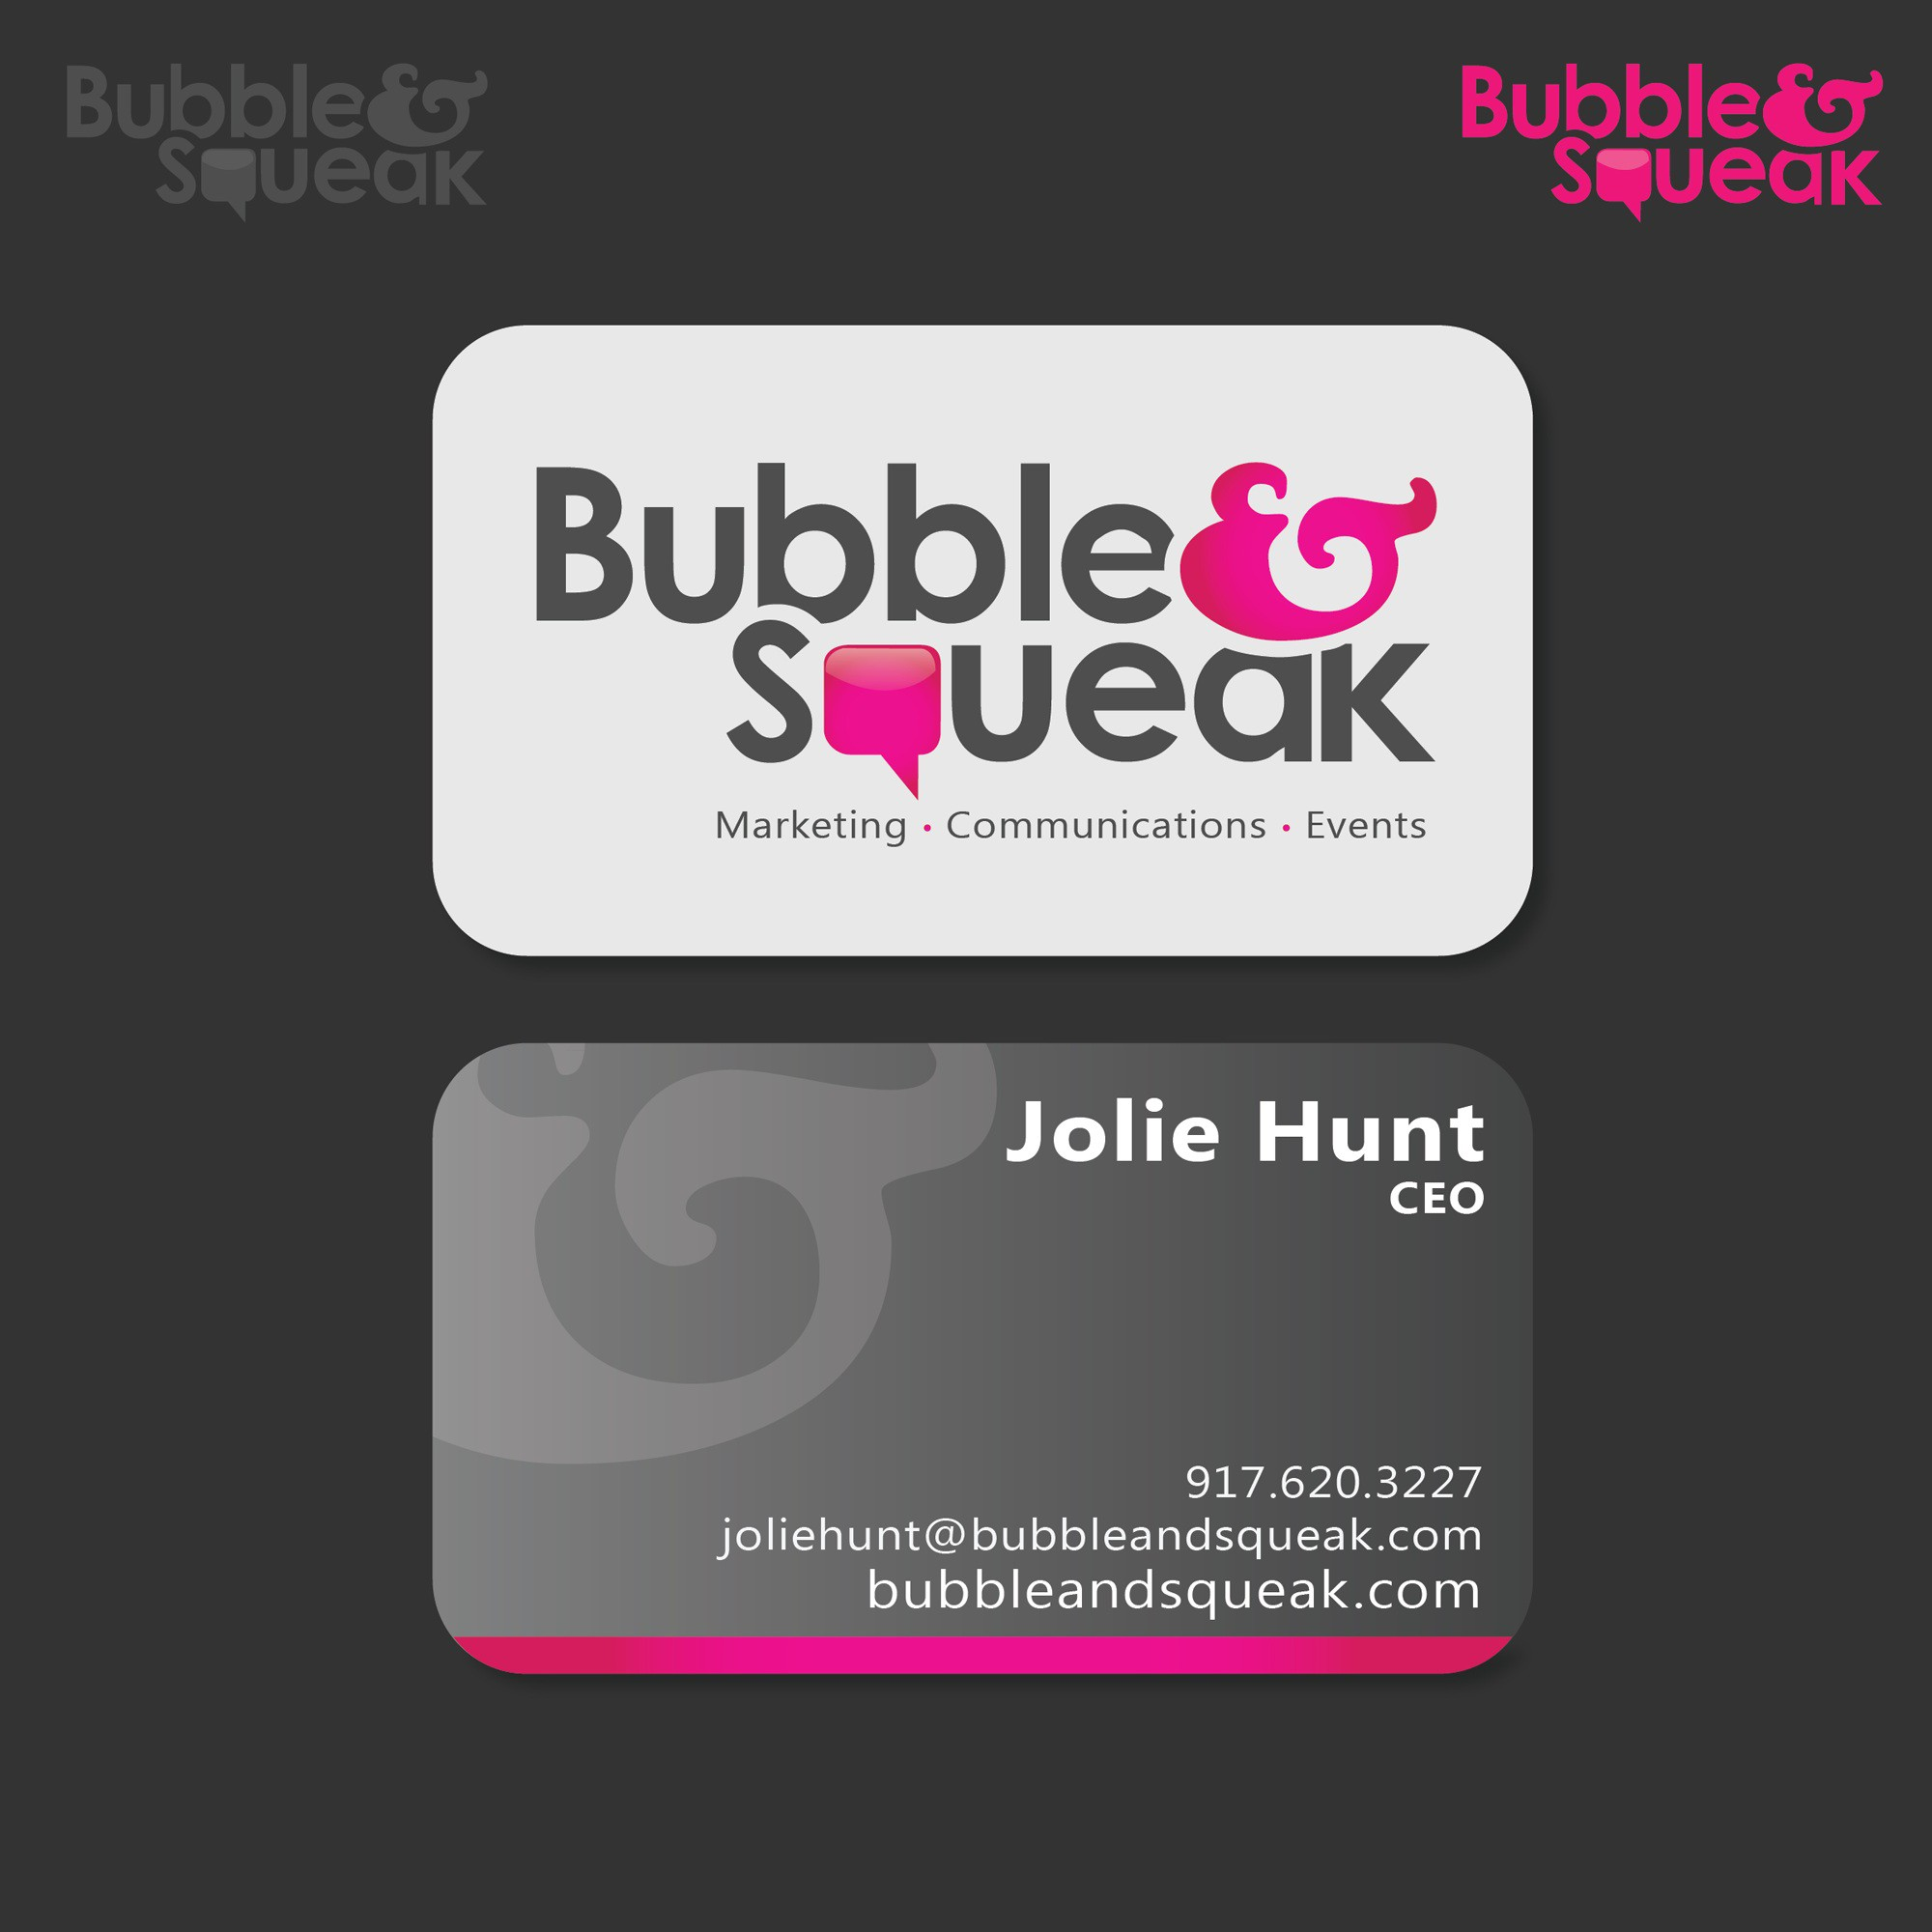 logo and business card for Bubble & Squeak